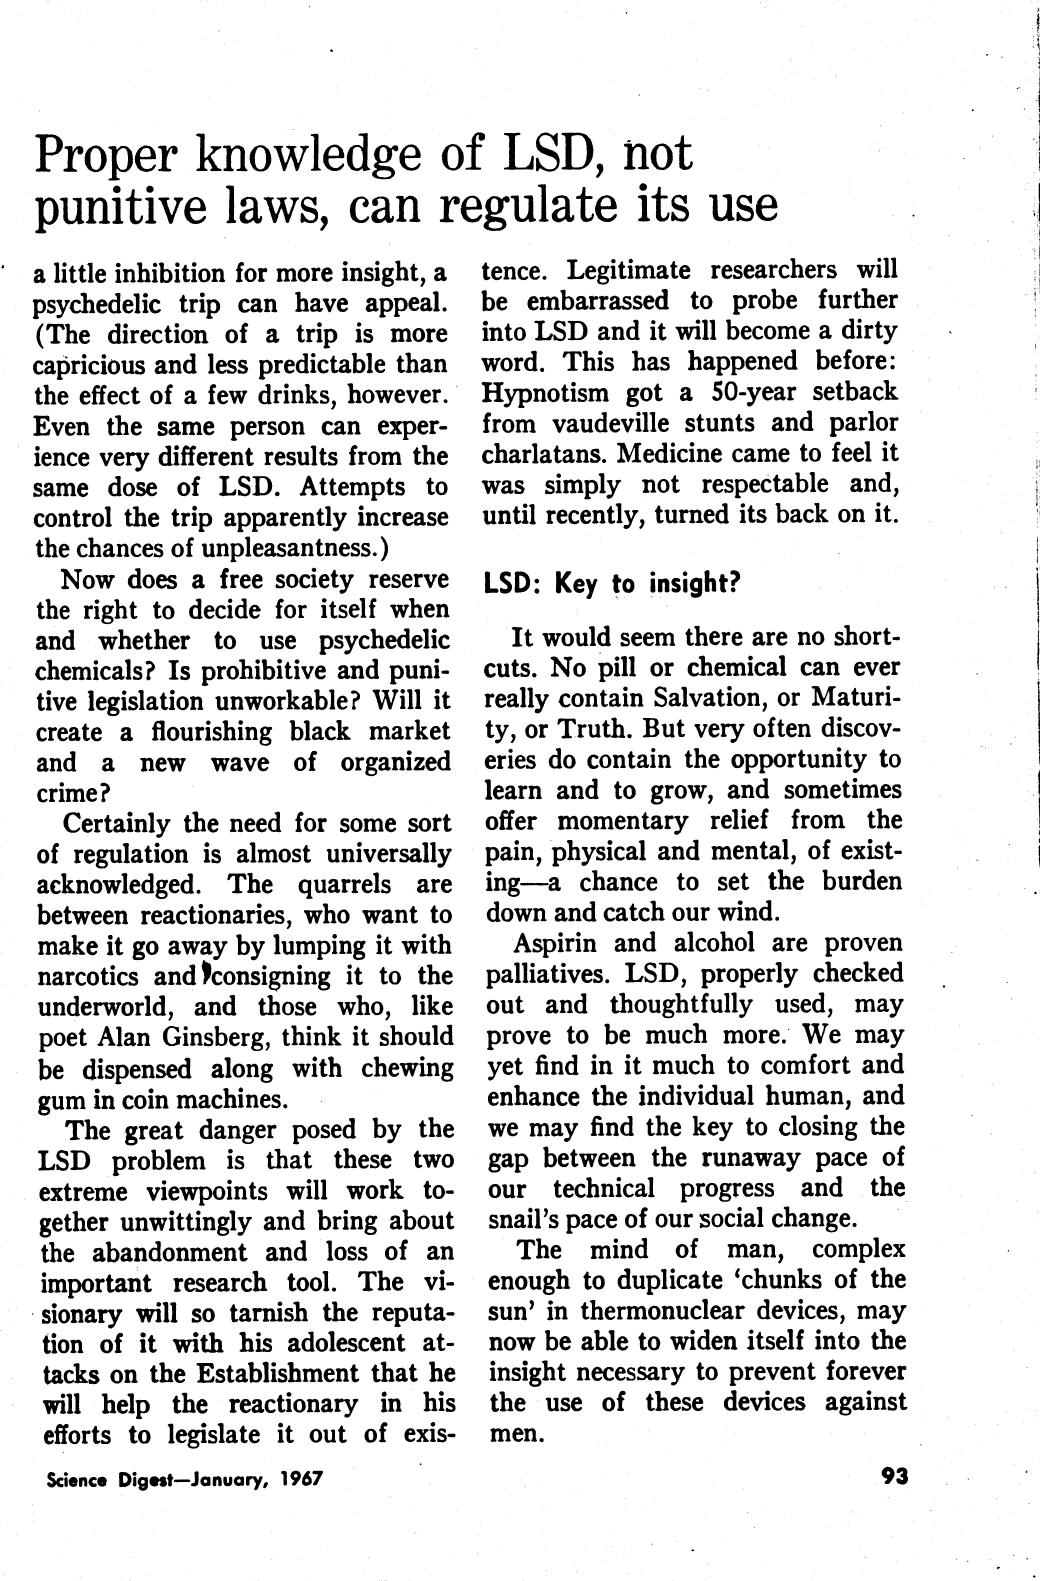 Science Digest, The Hugh Downs Column - Aspirin, Liquor and LSD January 1967 page 3